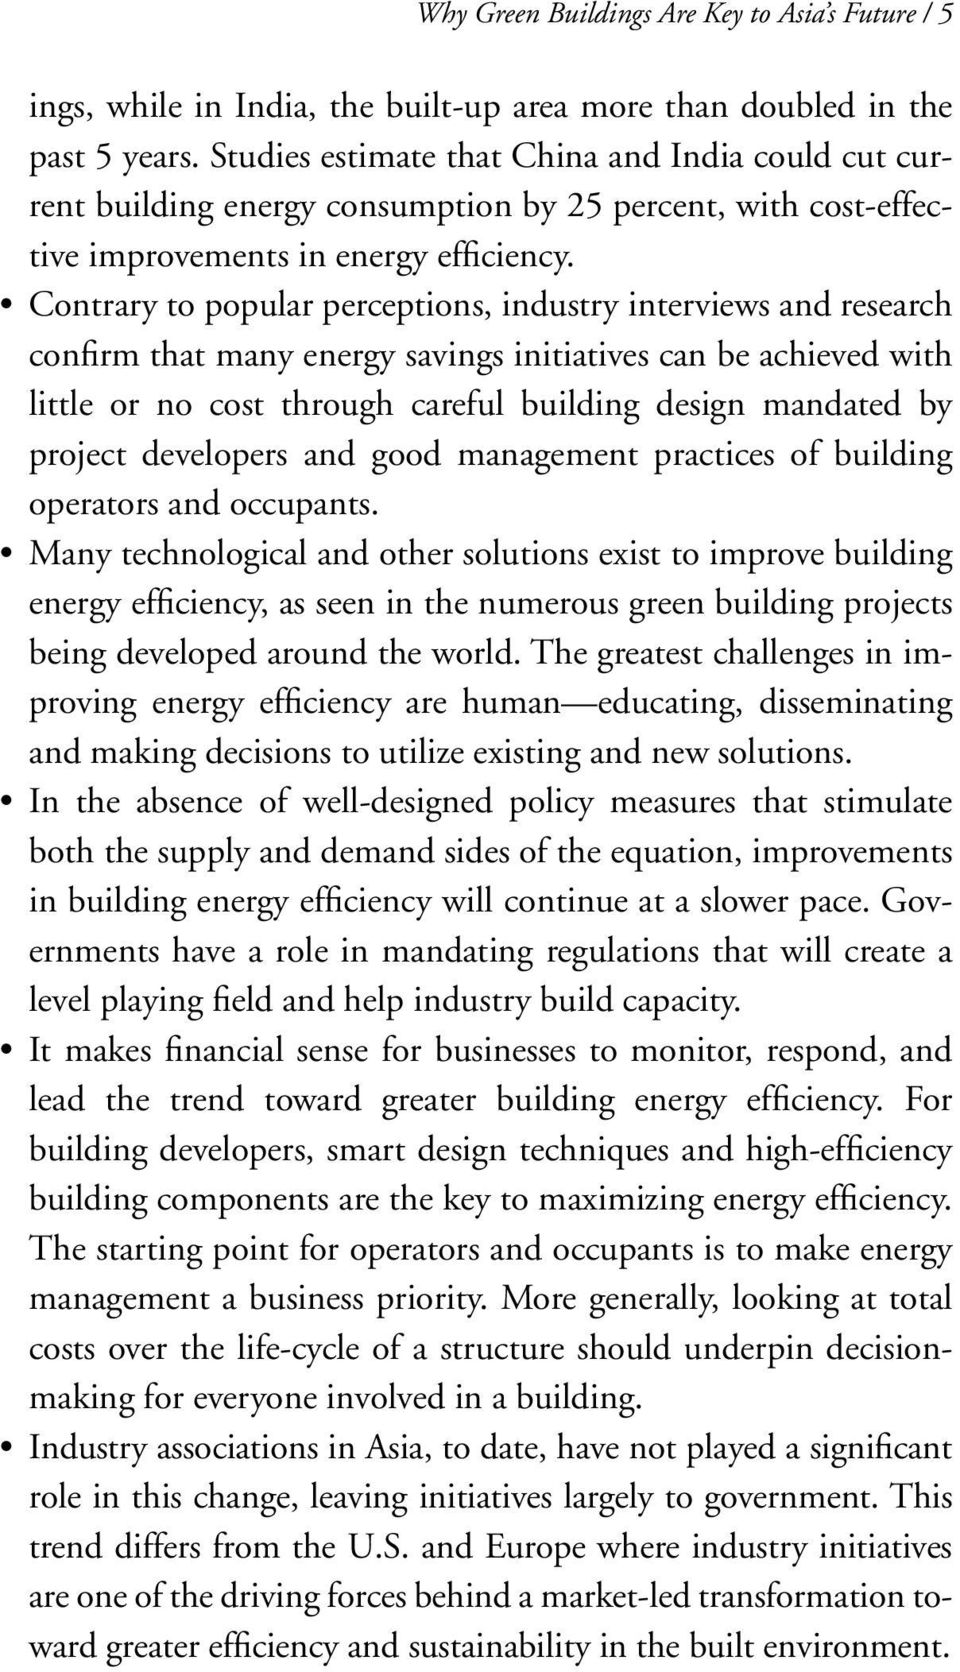 Contrary to popular perceptions, industry interviews and research confirm that many energy savings initiatives can be achieved with little or no cost through careful building design mandated by